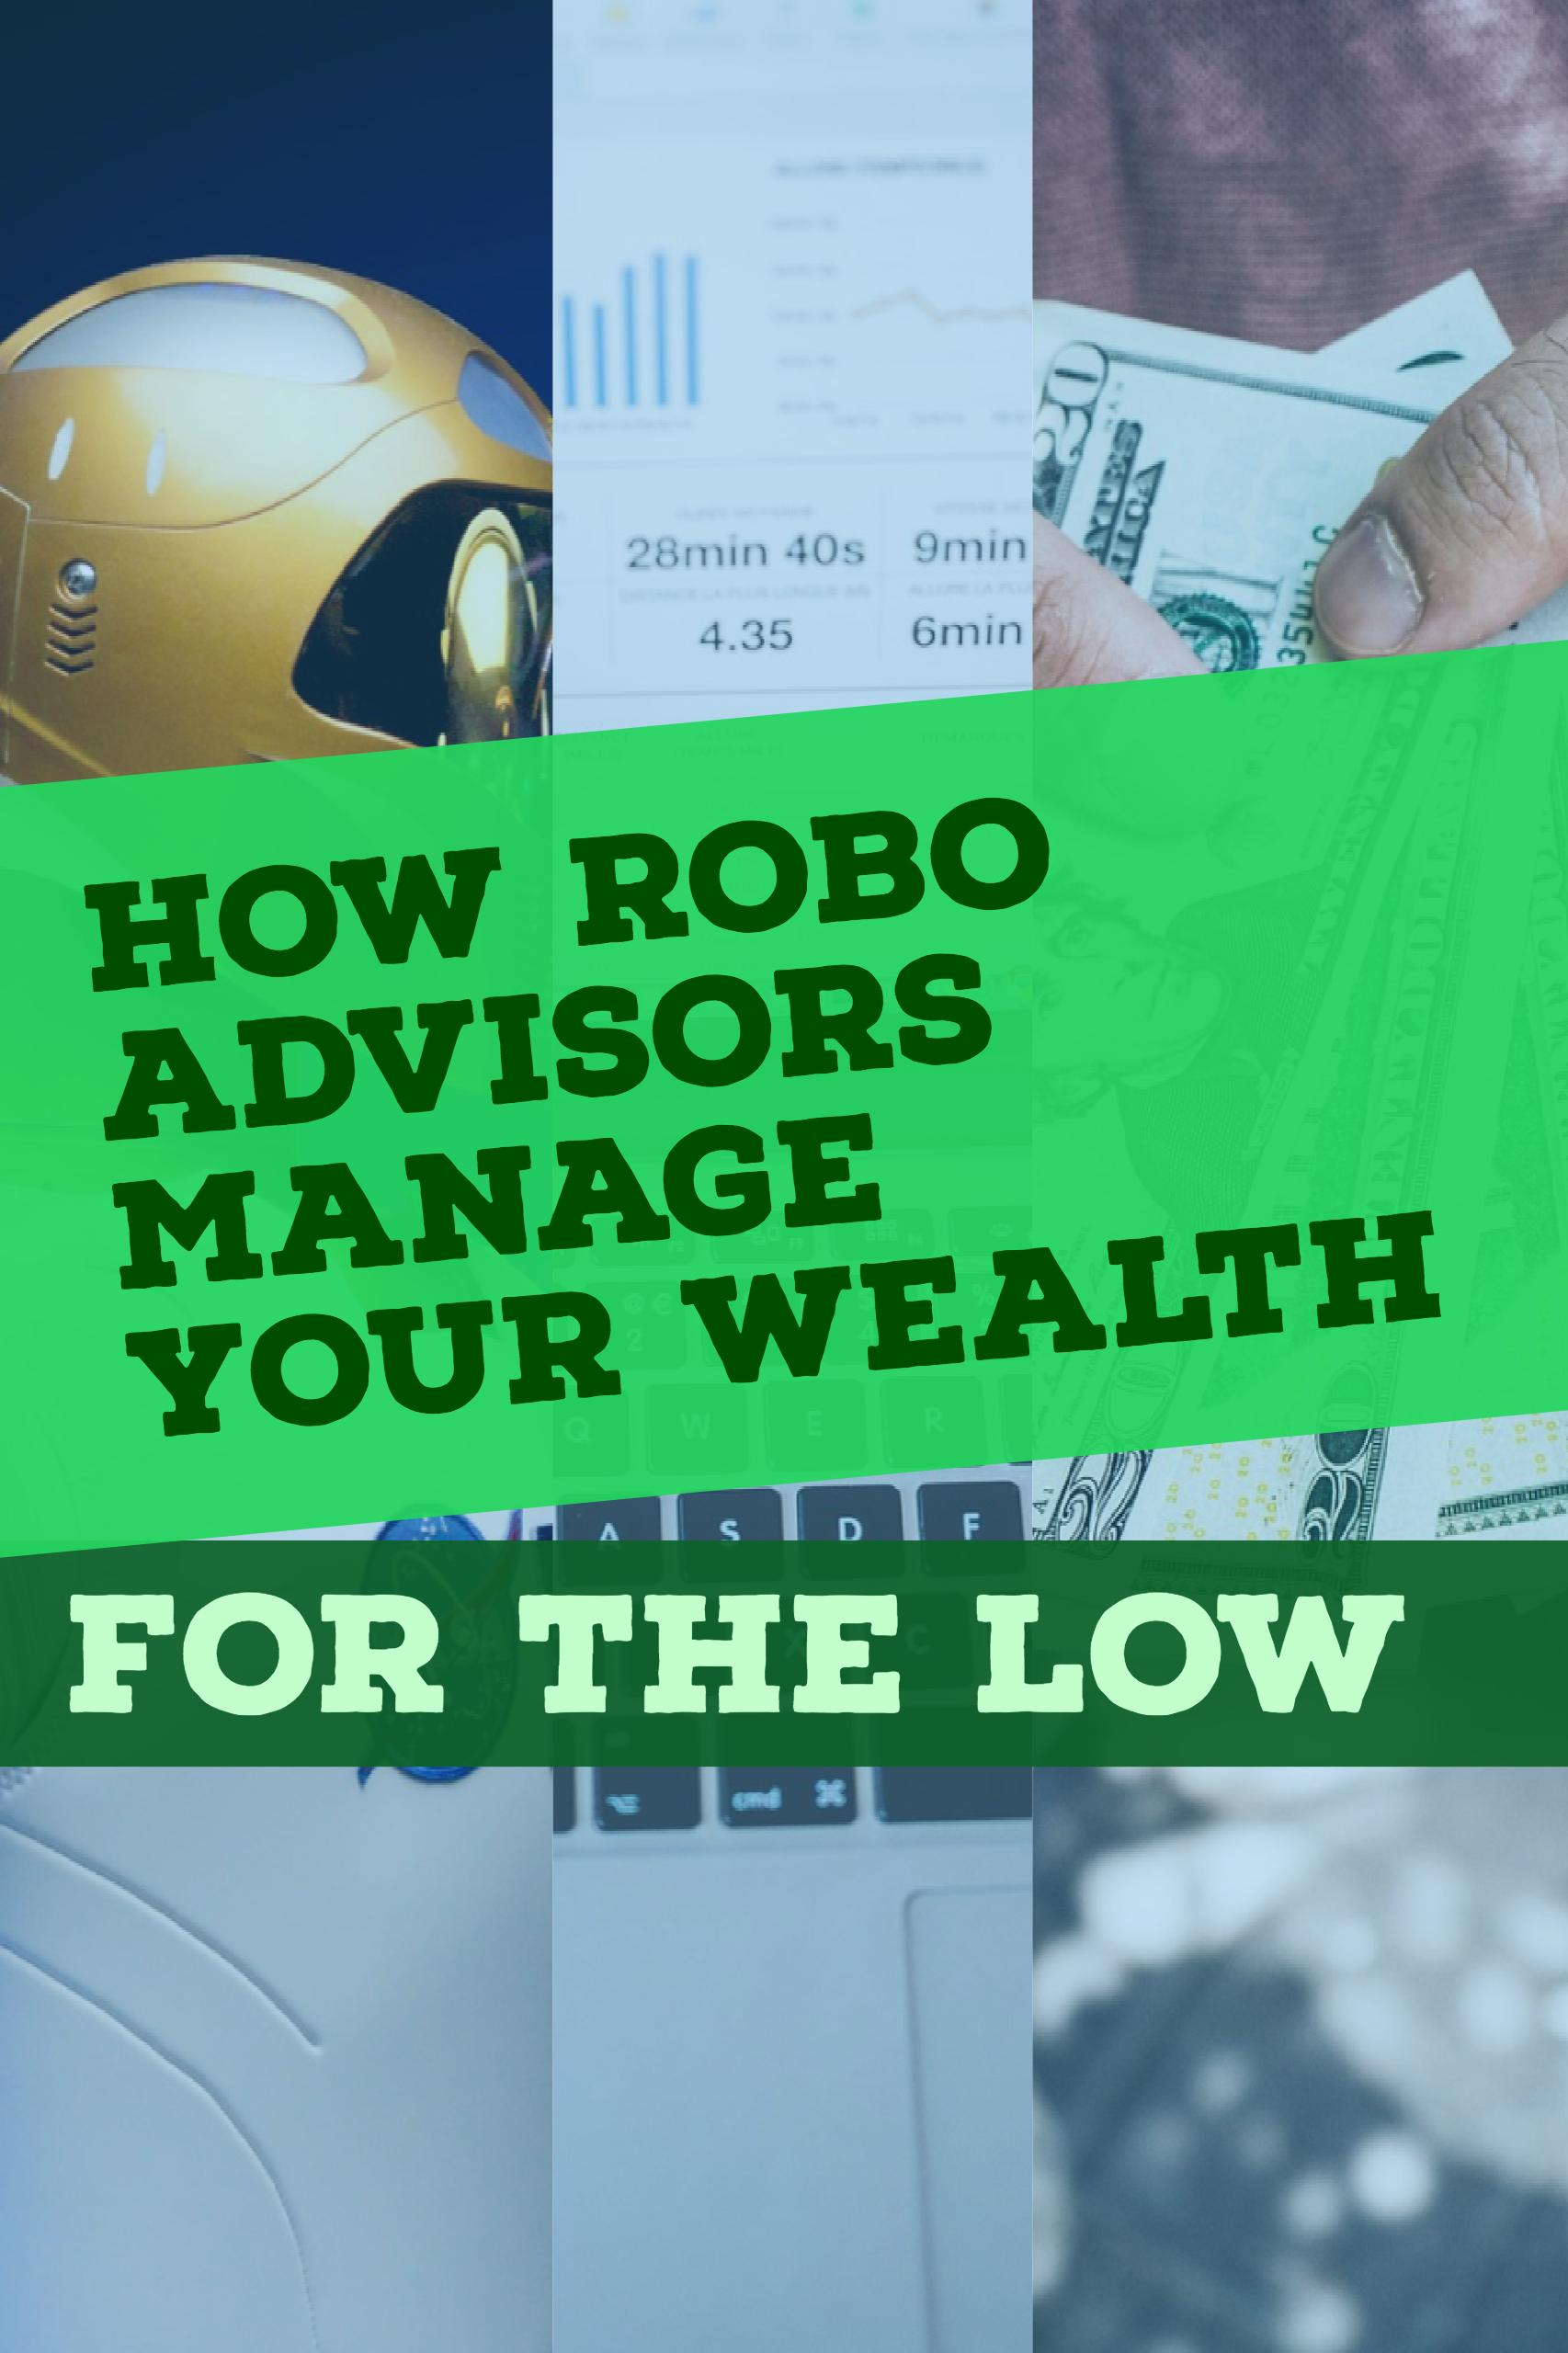 How Robo Advisors Manage your Wealth for The Low